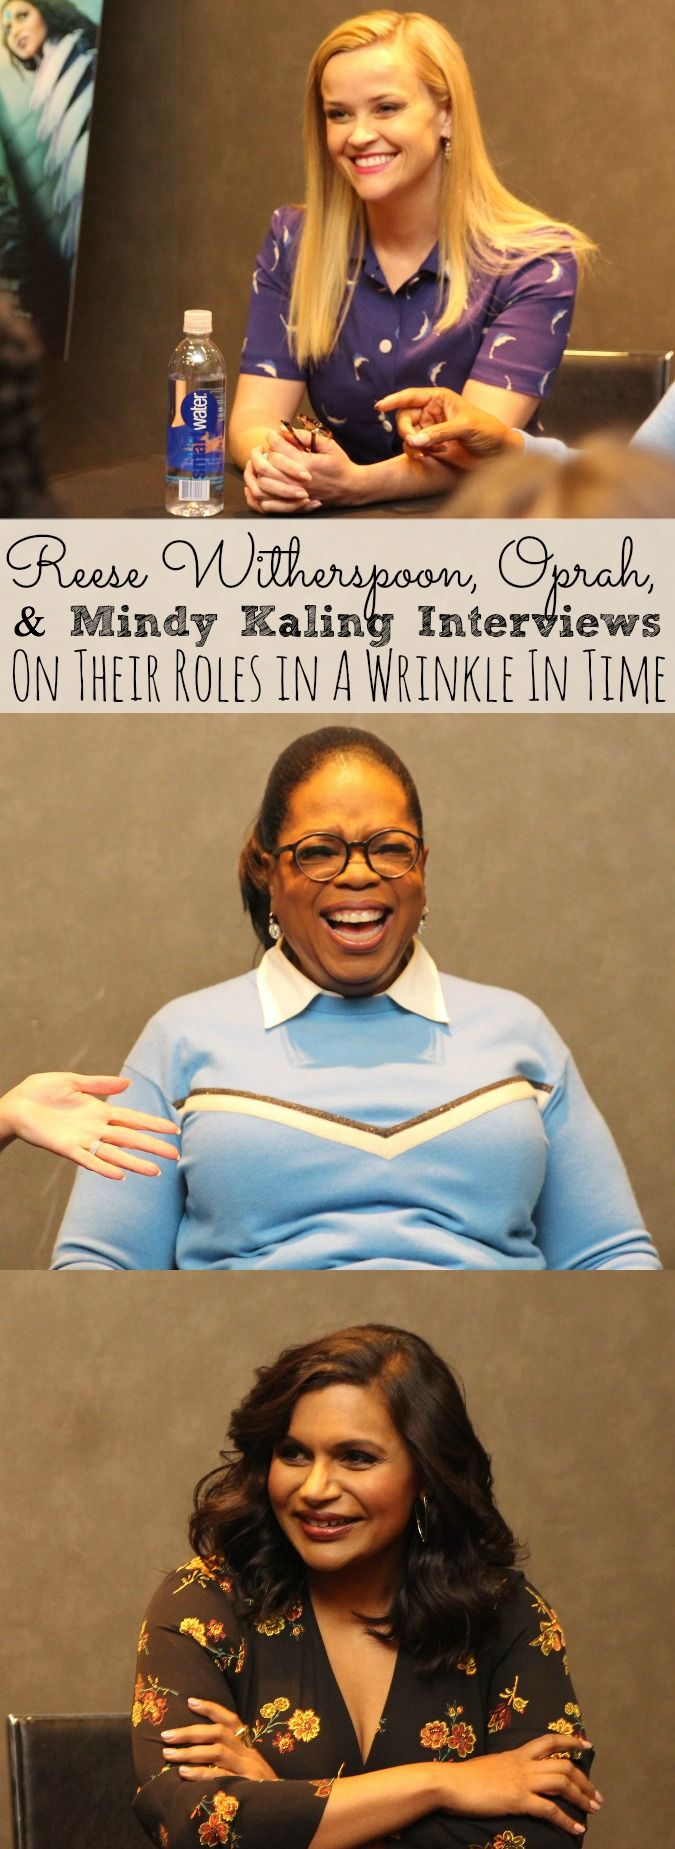 Do dreams come true? Well for 25 social media influencers it sure did! Check out our Interviews with Reese Witherspoon, Oprah, and Mindy Kaling as we discussed their roles as the Mrs. in A Wrinkle In Time. - simplytodaylife.com via @SimplyTodayLife